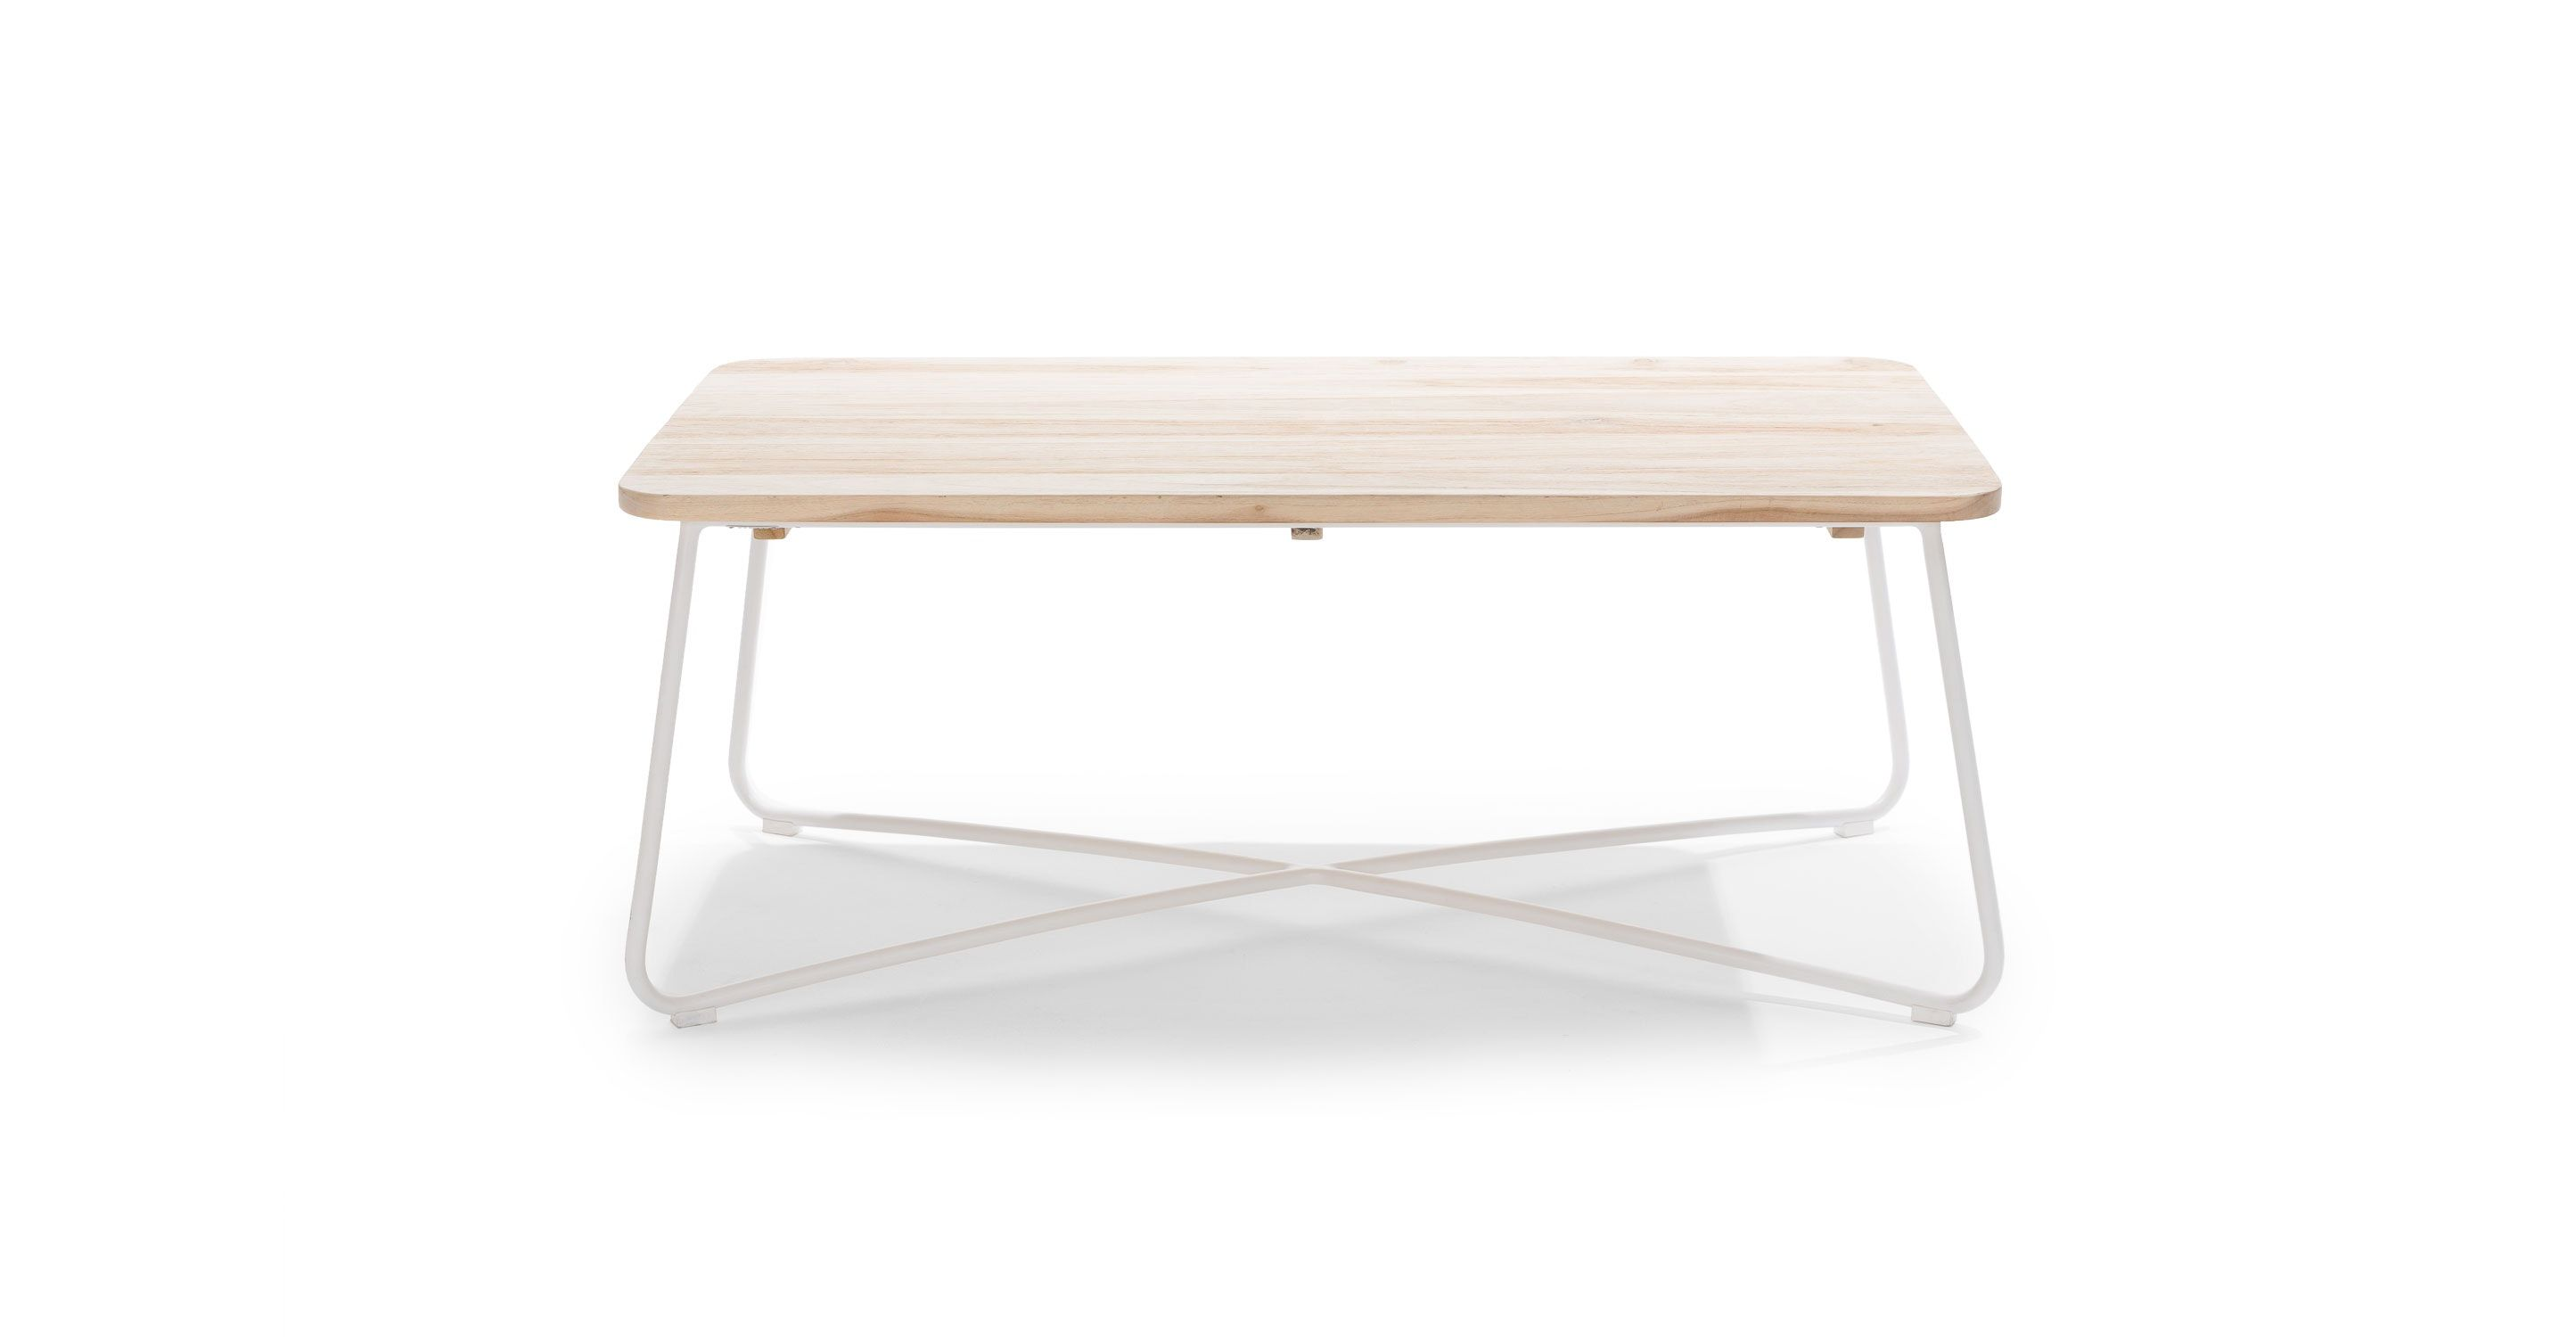 The Nimbus Table Has A Light And Airy Touch Thanks To Its Slender Legs And Criss Cross Powder C Mid Century Modern Coffee Table Coffee Table White Coffee Table [ 1500 x 2890 Pixel ]